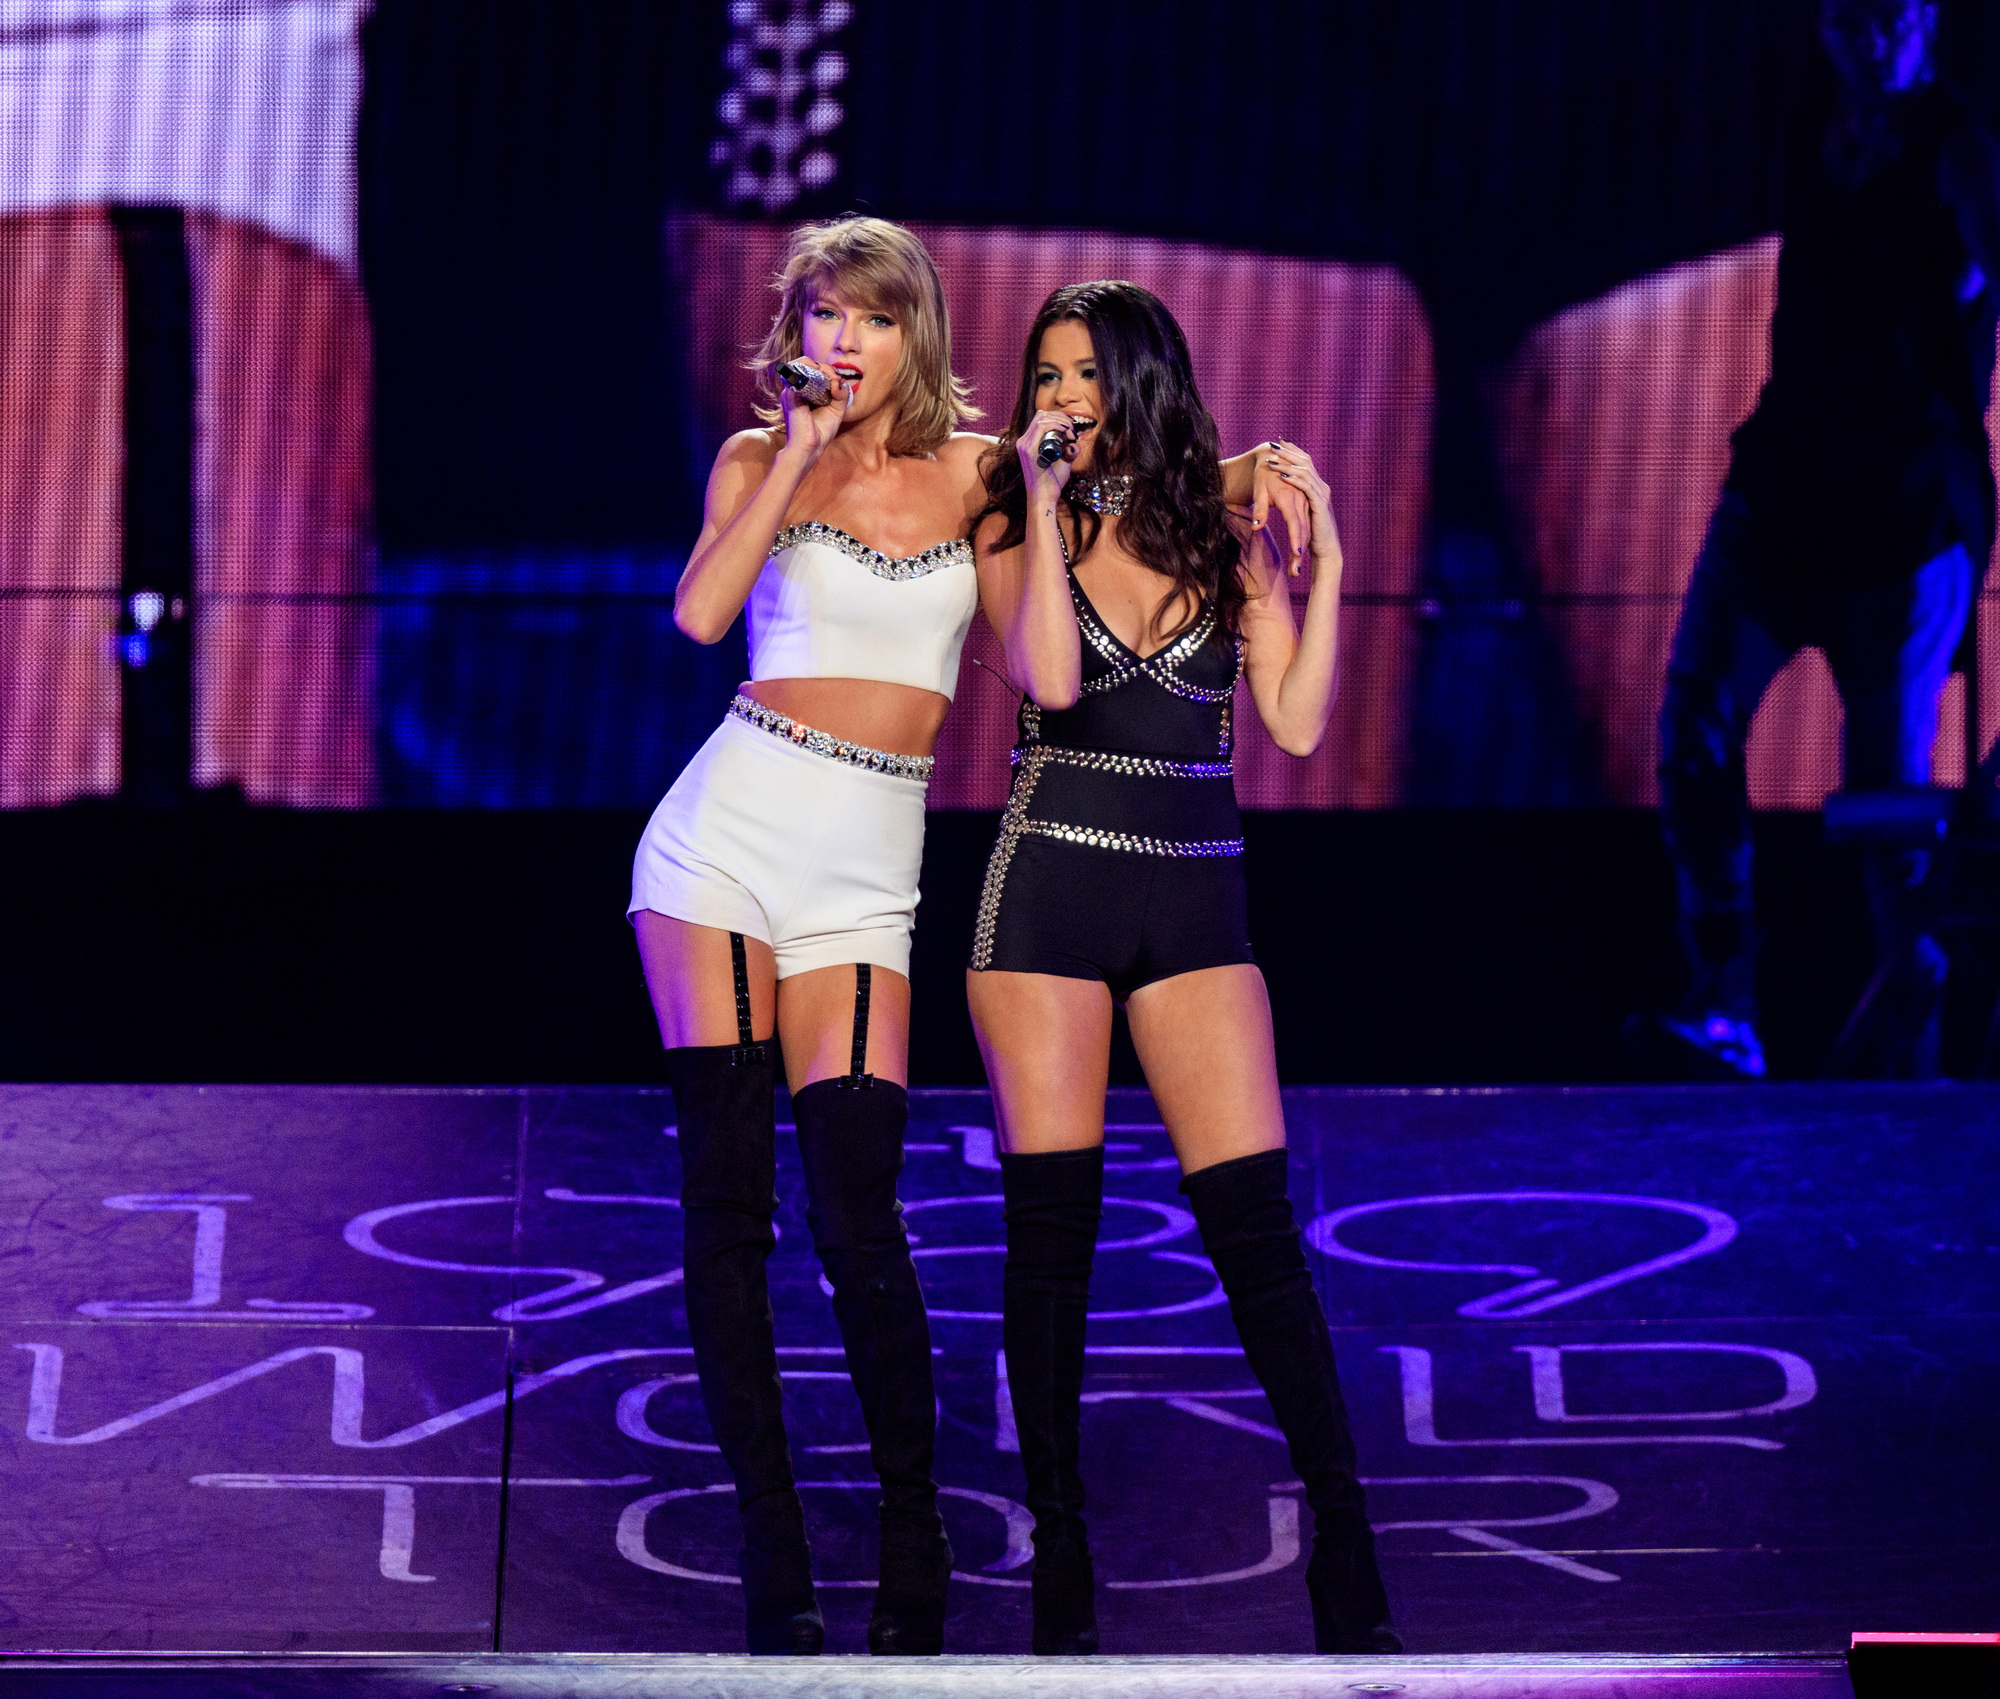 Taylor Swift And Selena Gomez The 1989 World Tour Live In Los Angeles Video And Gif Fashionsizzle